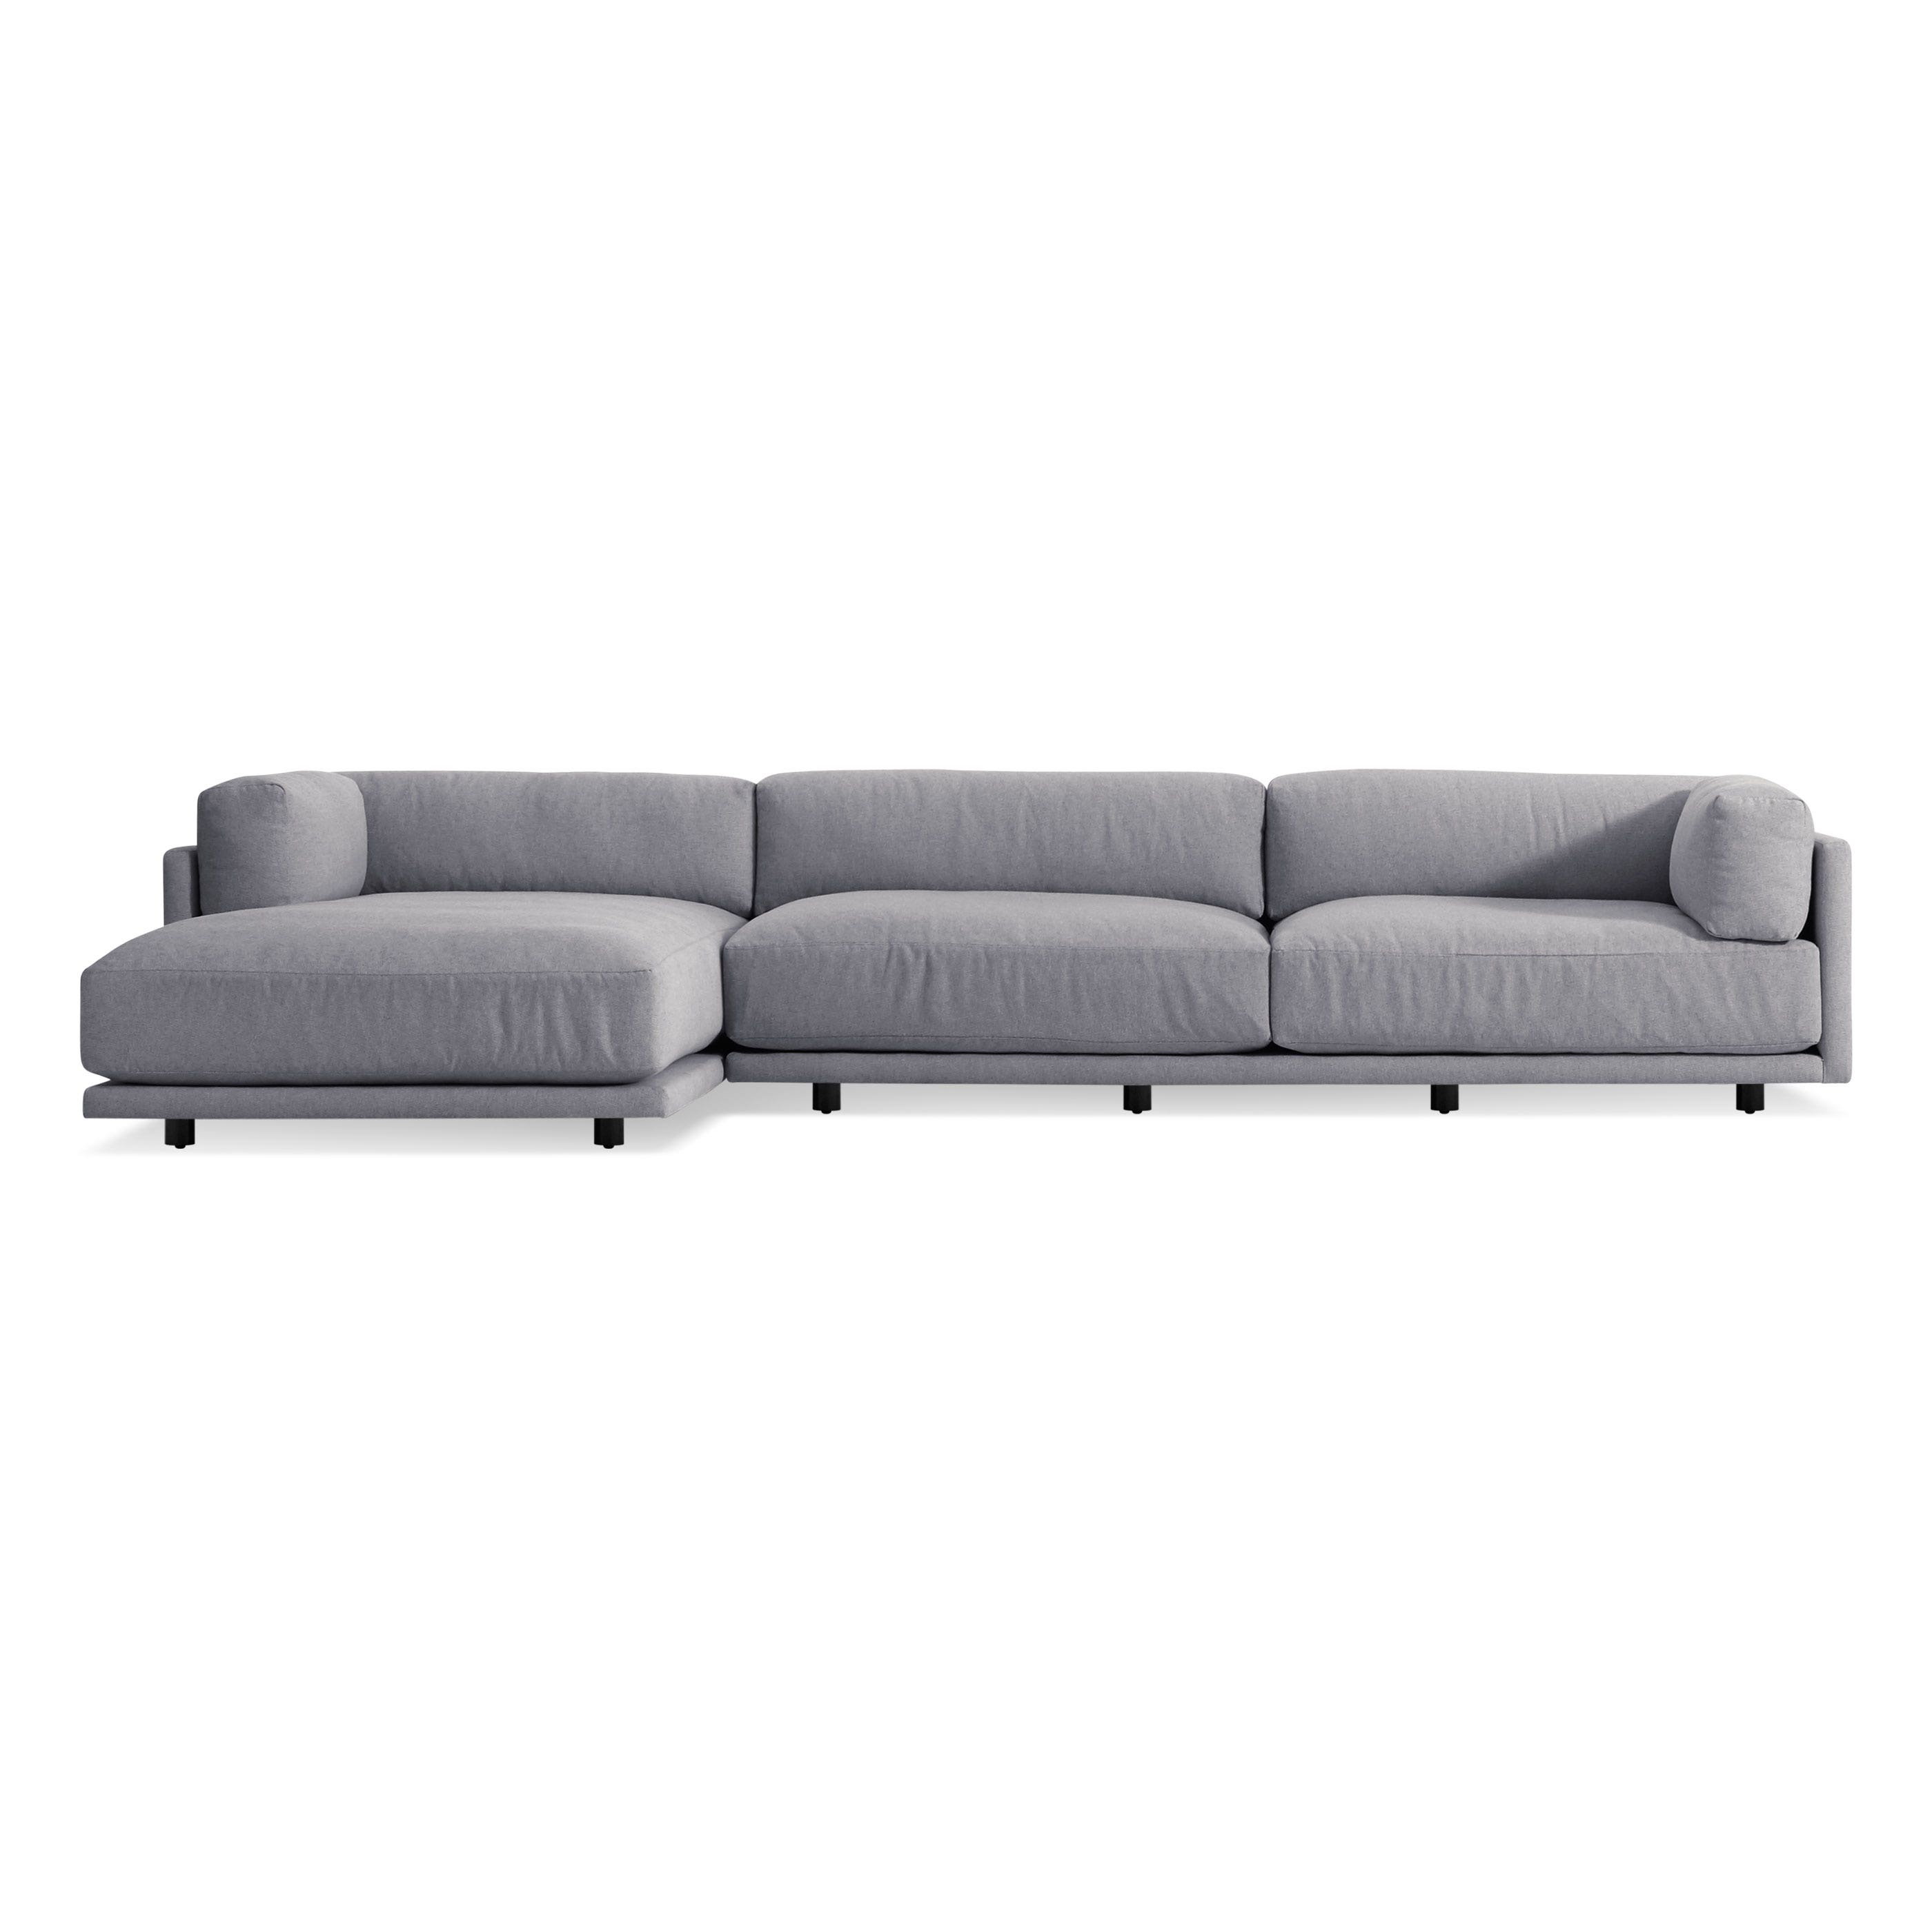 Sunday sofa w left arm chaise left arm chaise for 2 arm chaise lounge